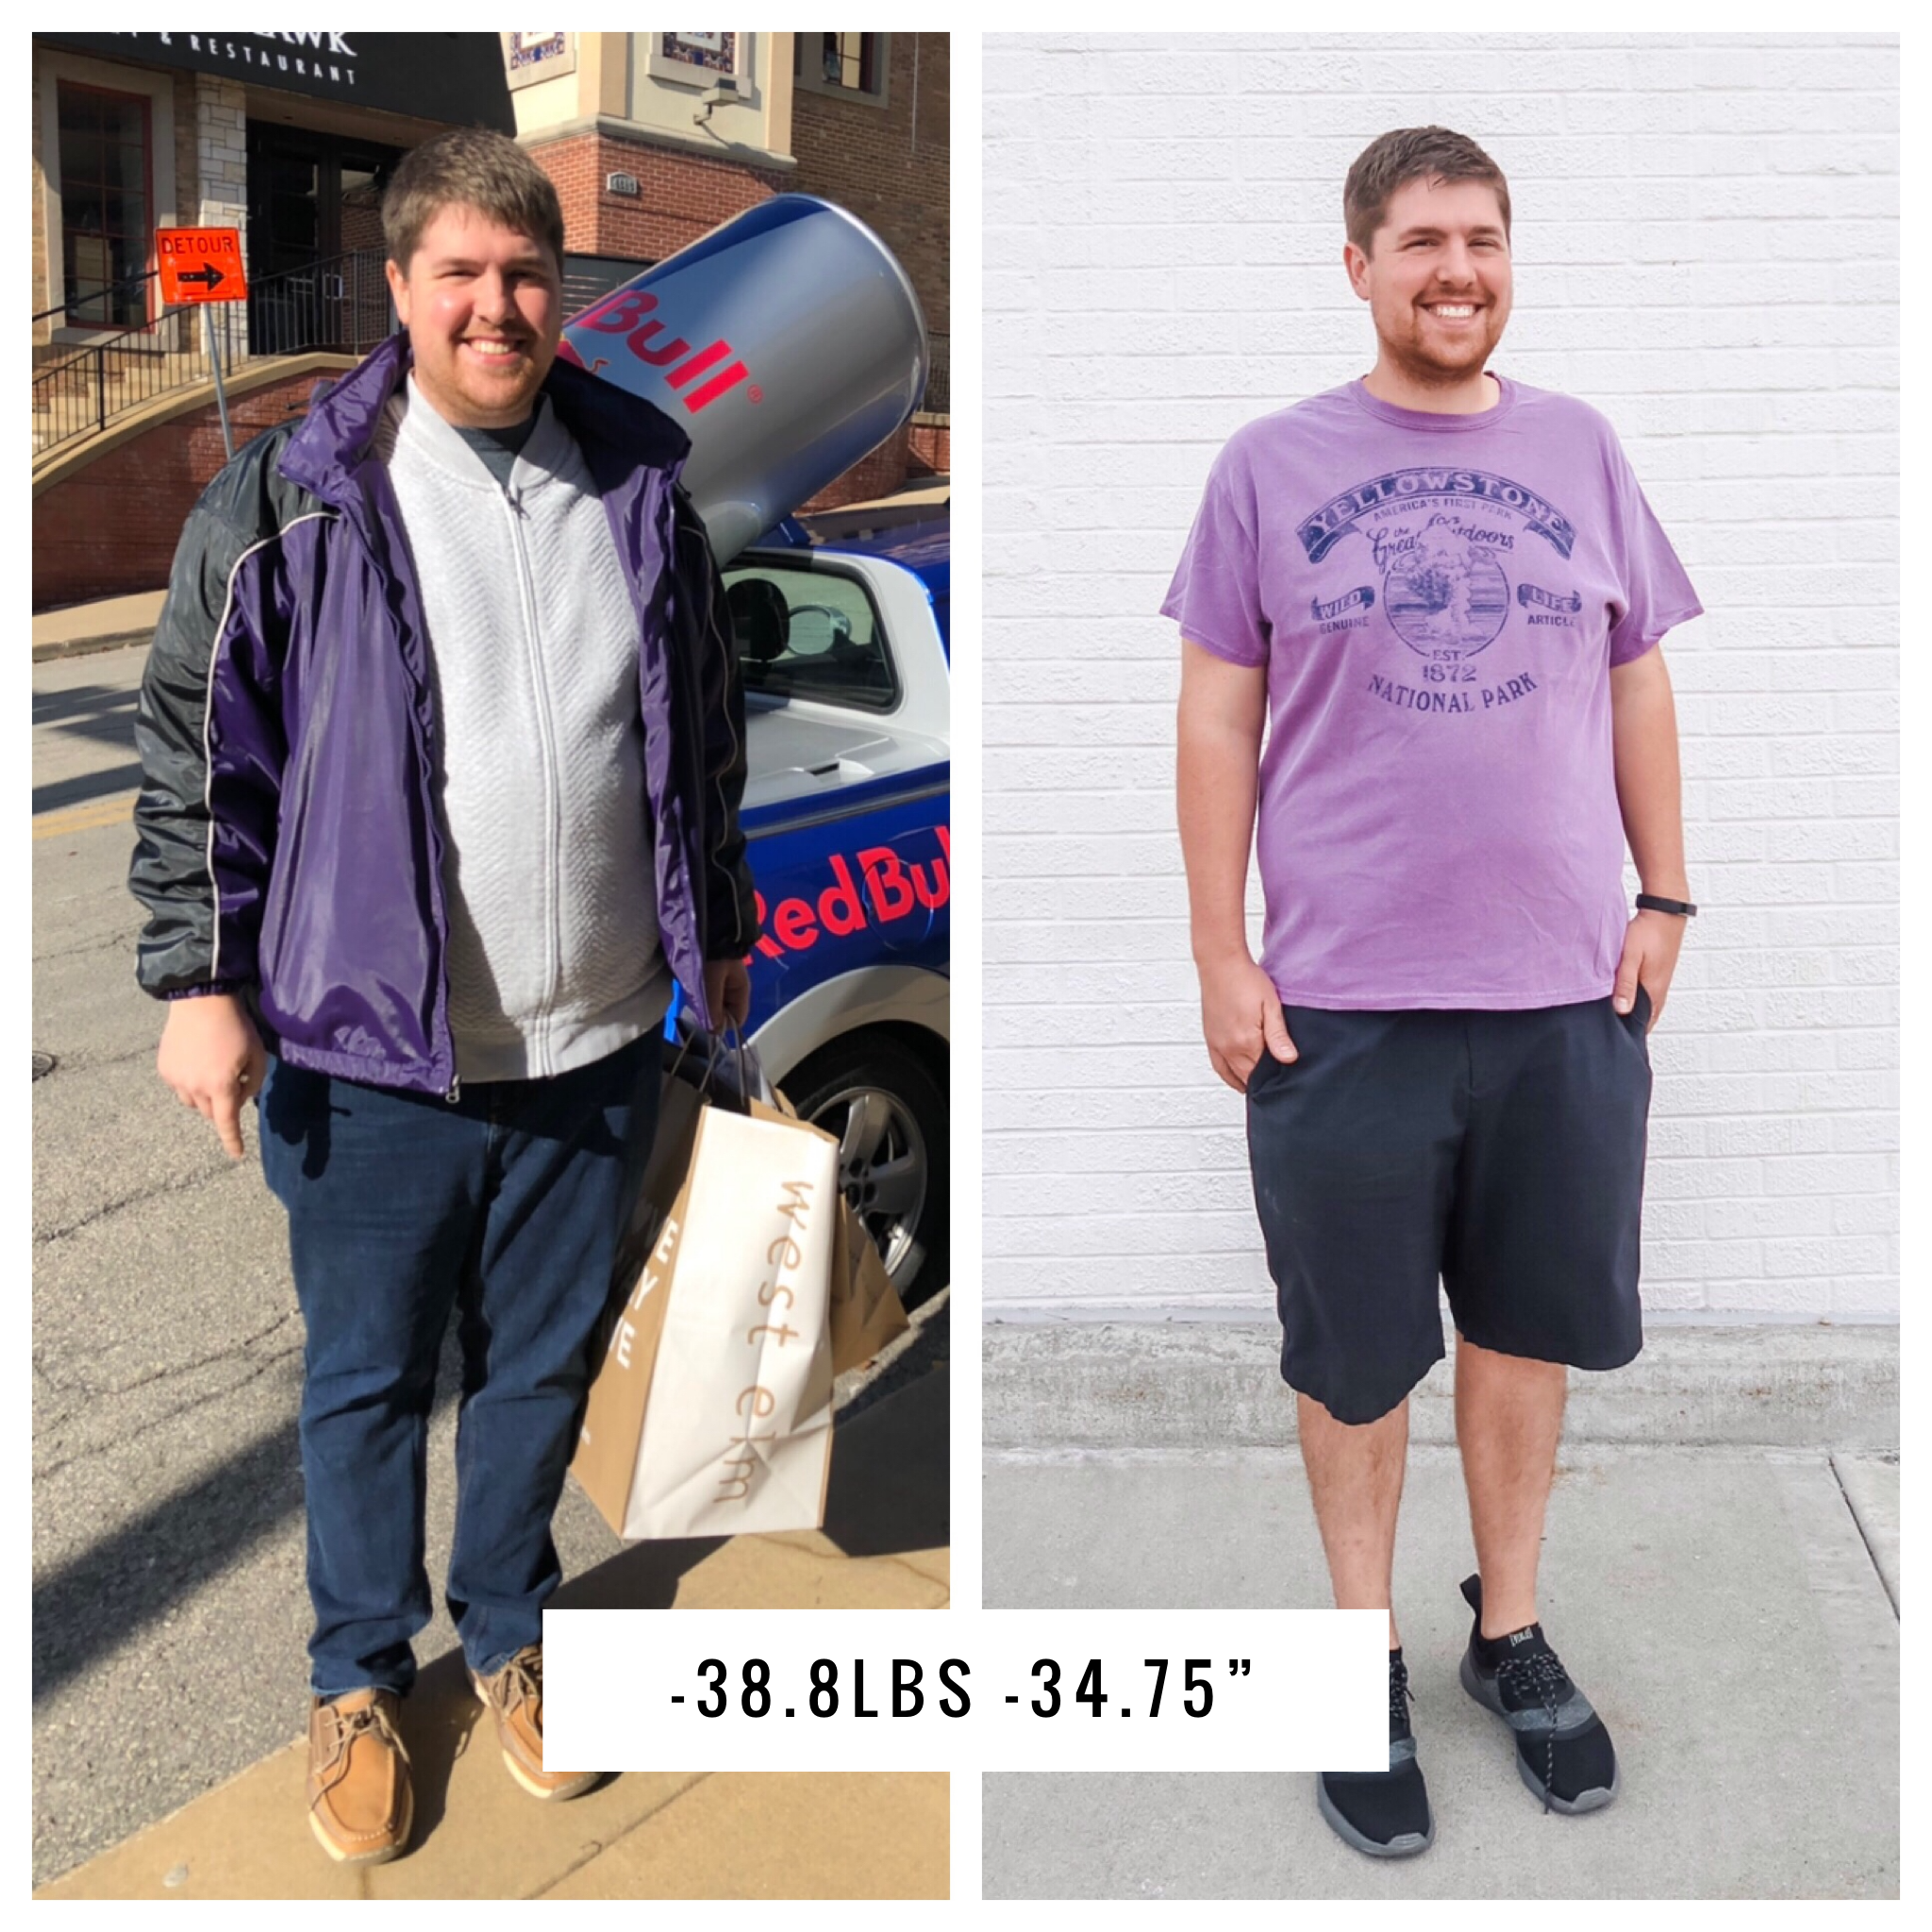 Losing 35 Pounds - Before and After